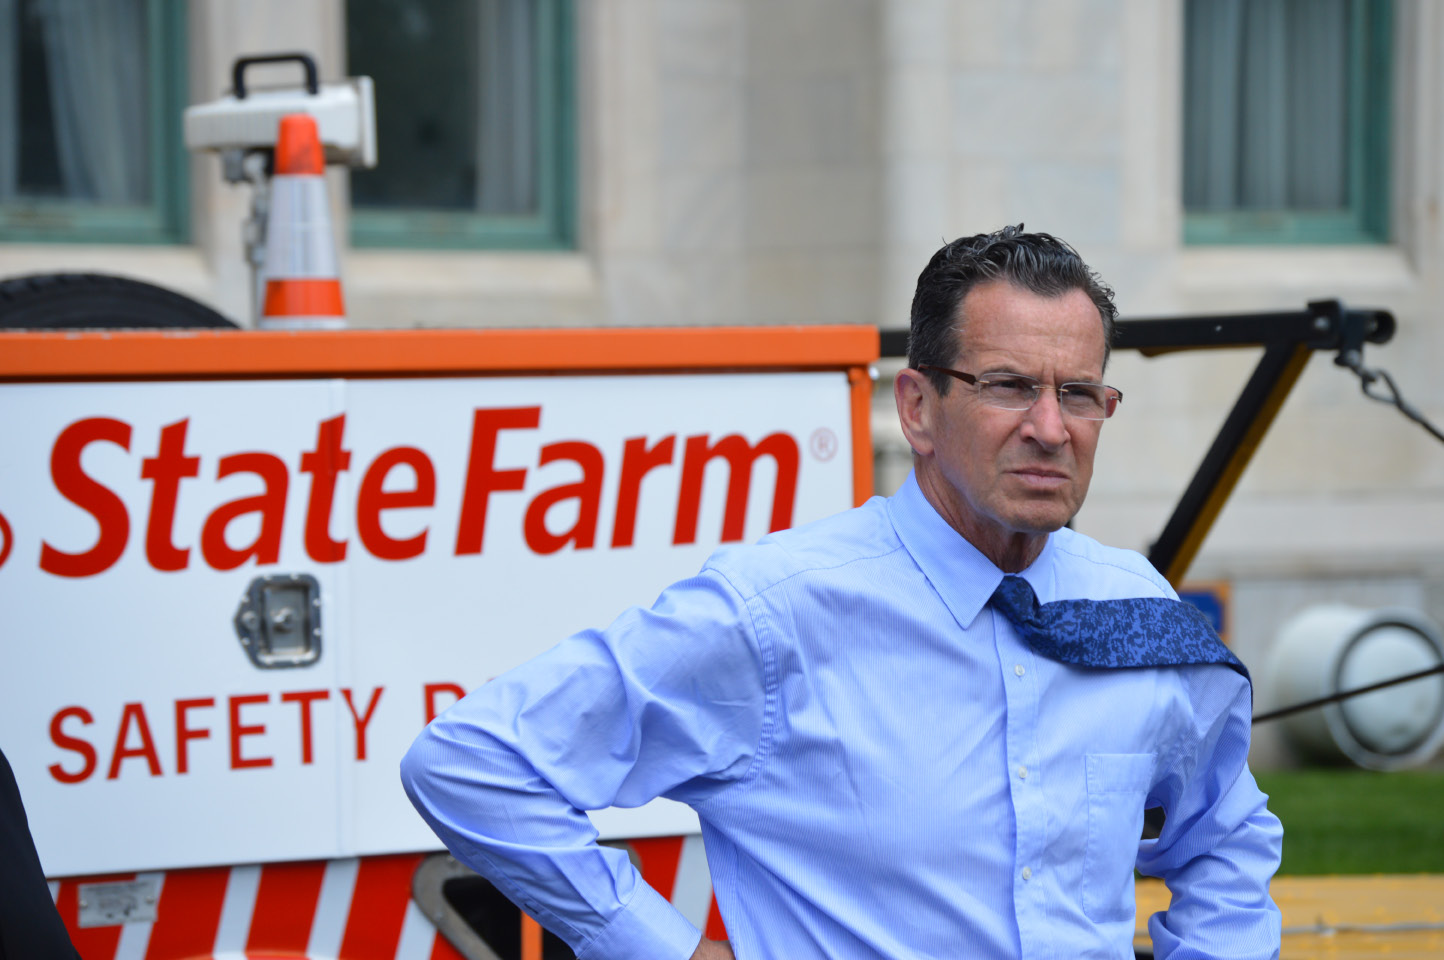 Gov. Dannel P. Malloy announced that State Farm will pay $495,000 annually to help fund the Connecticut Highways Assistance Motorist Patrol during a press conference on Friday, May 19, 2017. | Mike Savino, Record-Journal